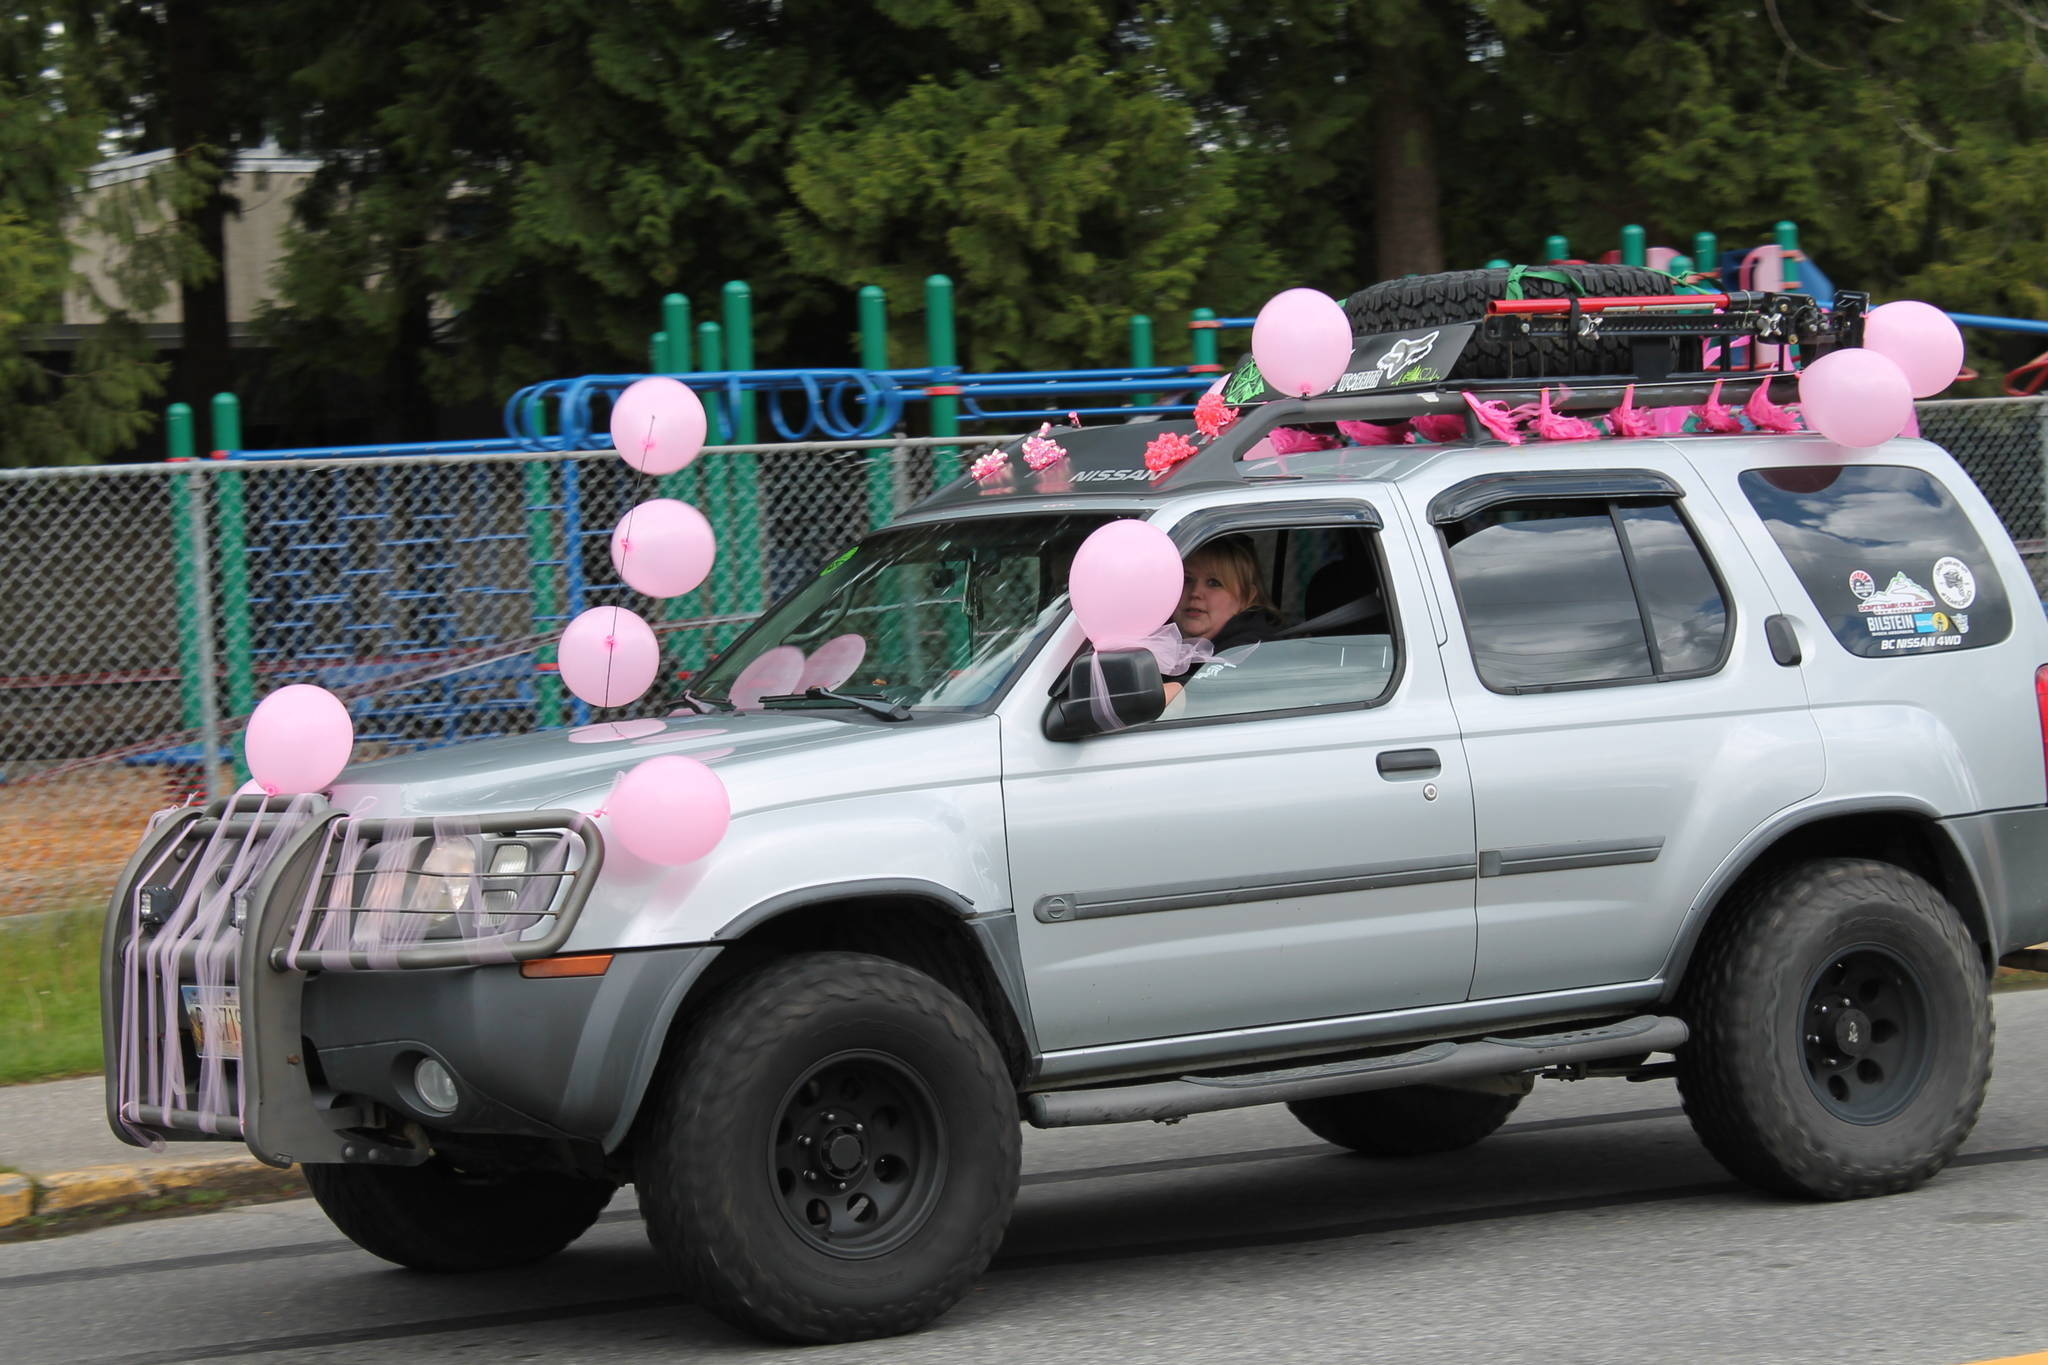 A vehicle was a pink decorations was part of a parade in Langley on May 3, 2020 to celebrate the birth of baby girl. (Anngela Bayer/Special to Langley Advance Times)